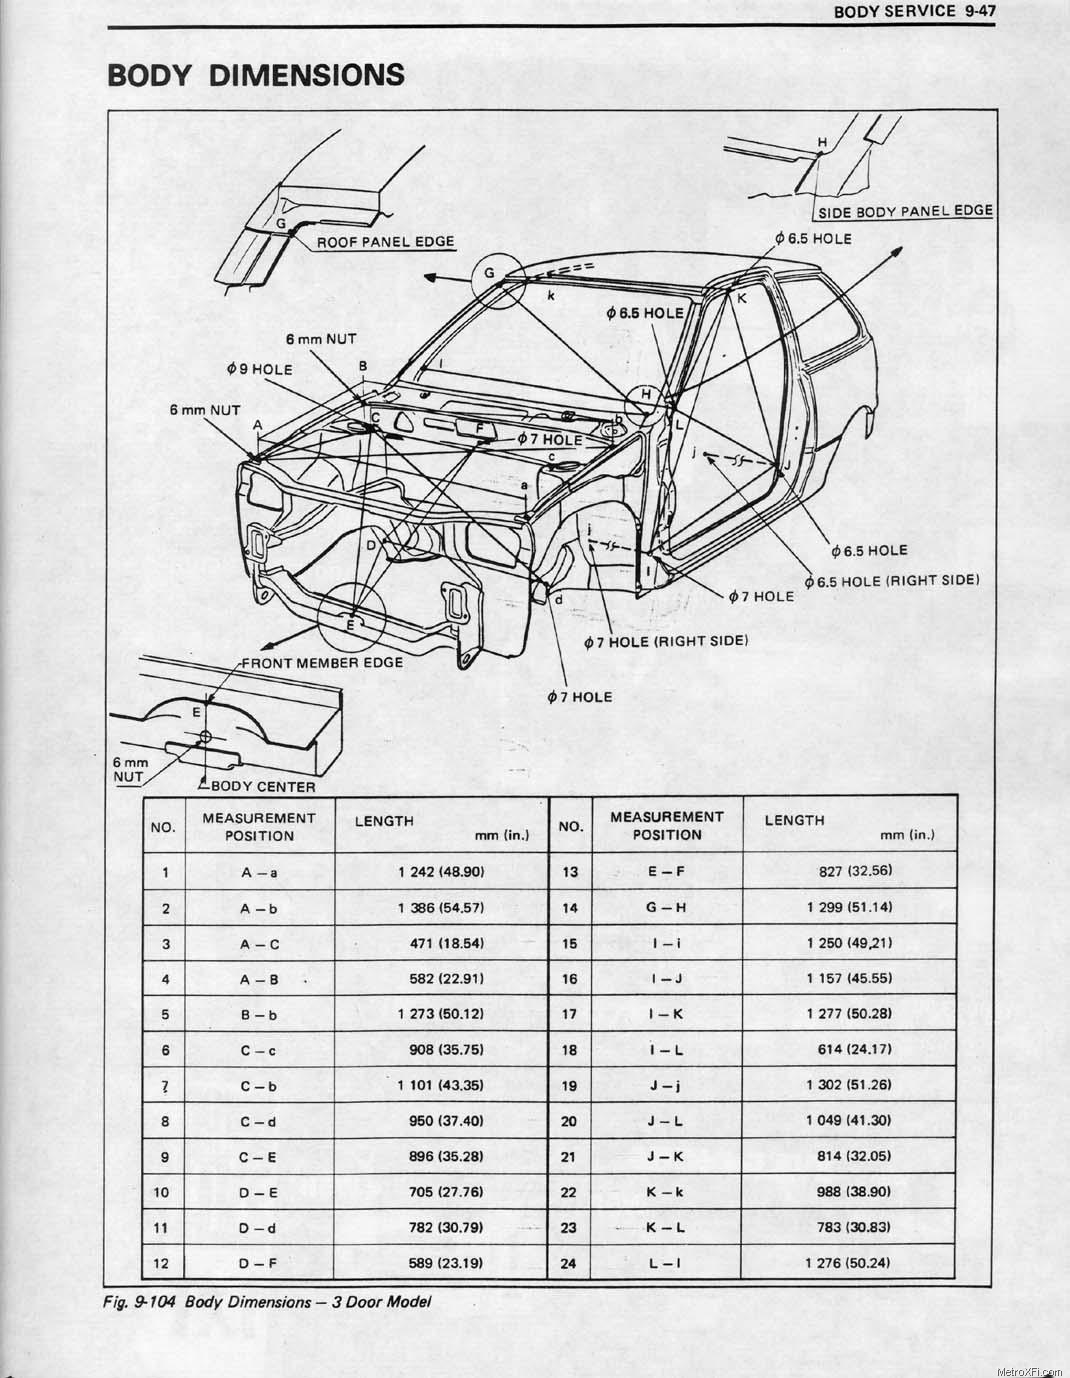 [DIAGRAM] 1990 Geo Metro Engine Diagram FULL Version HD